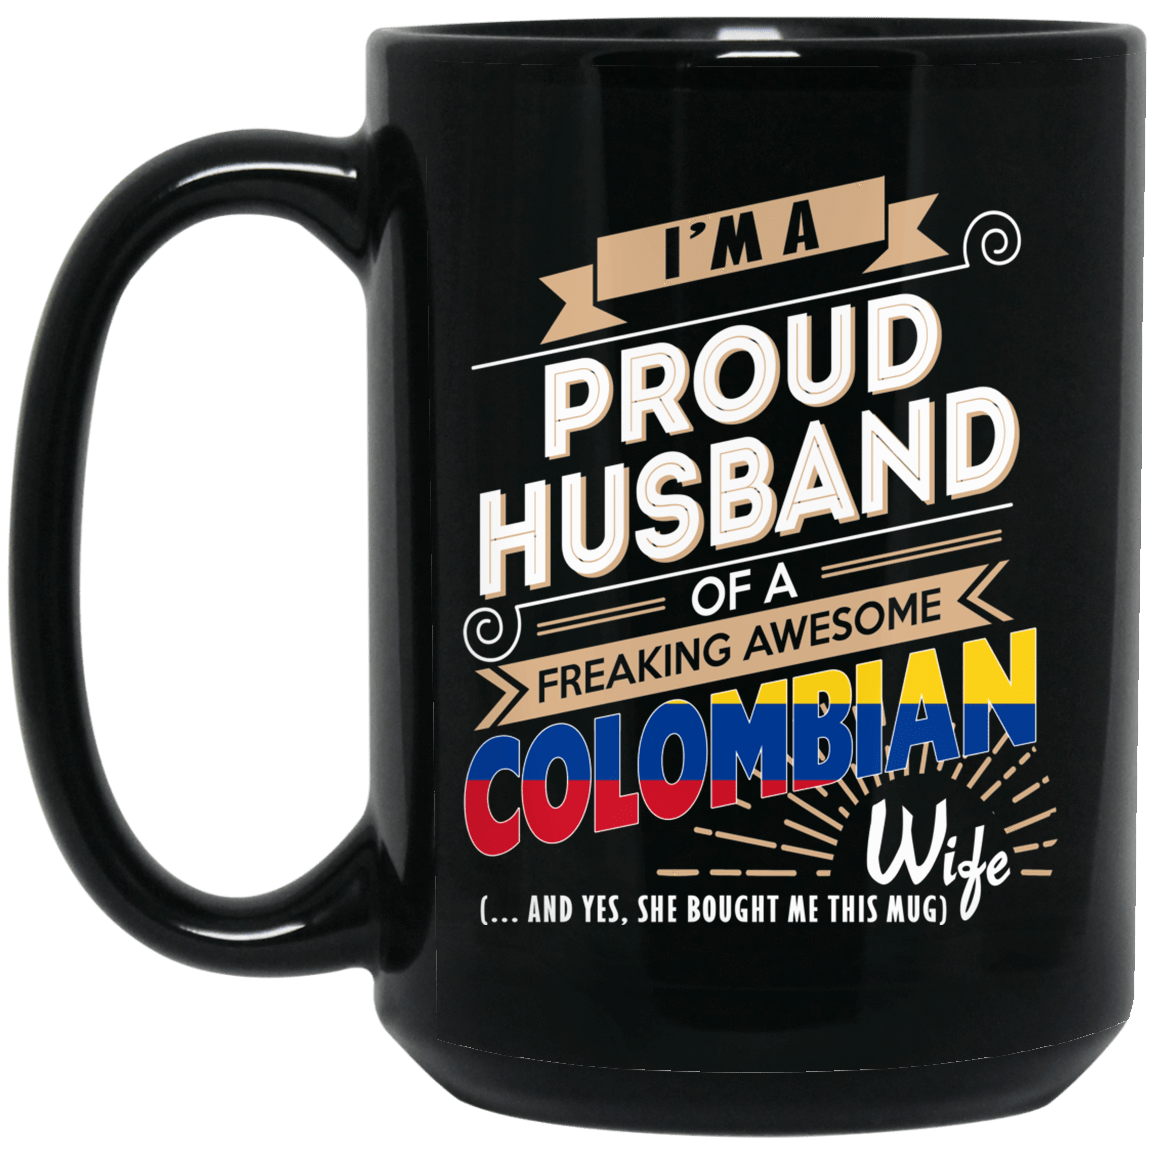 Proud Husband Of A Freaking Awesome Colombian Wife Mug 1066-10182-72136600-49311 - Tee Ript